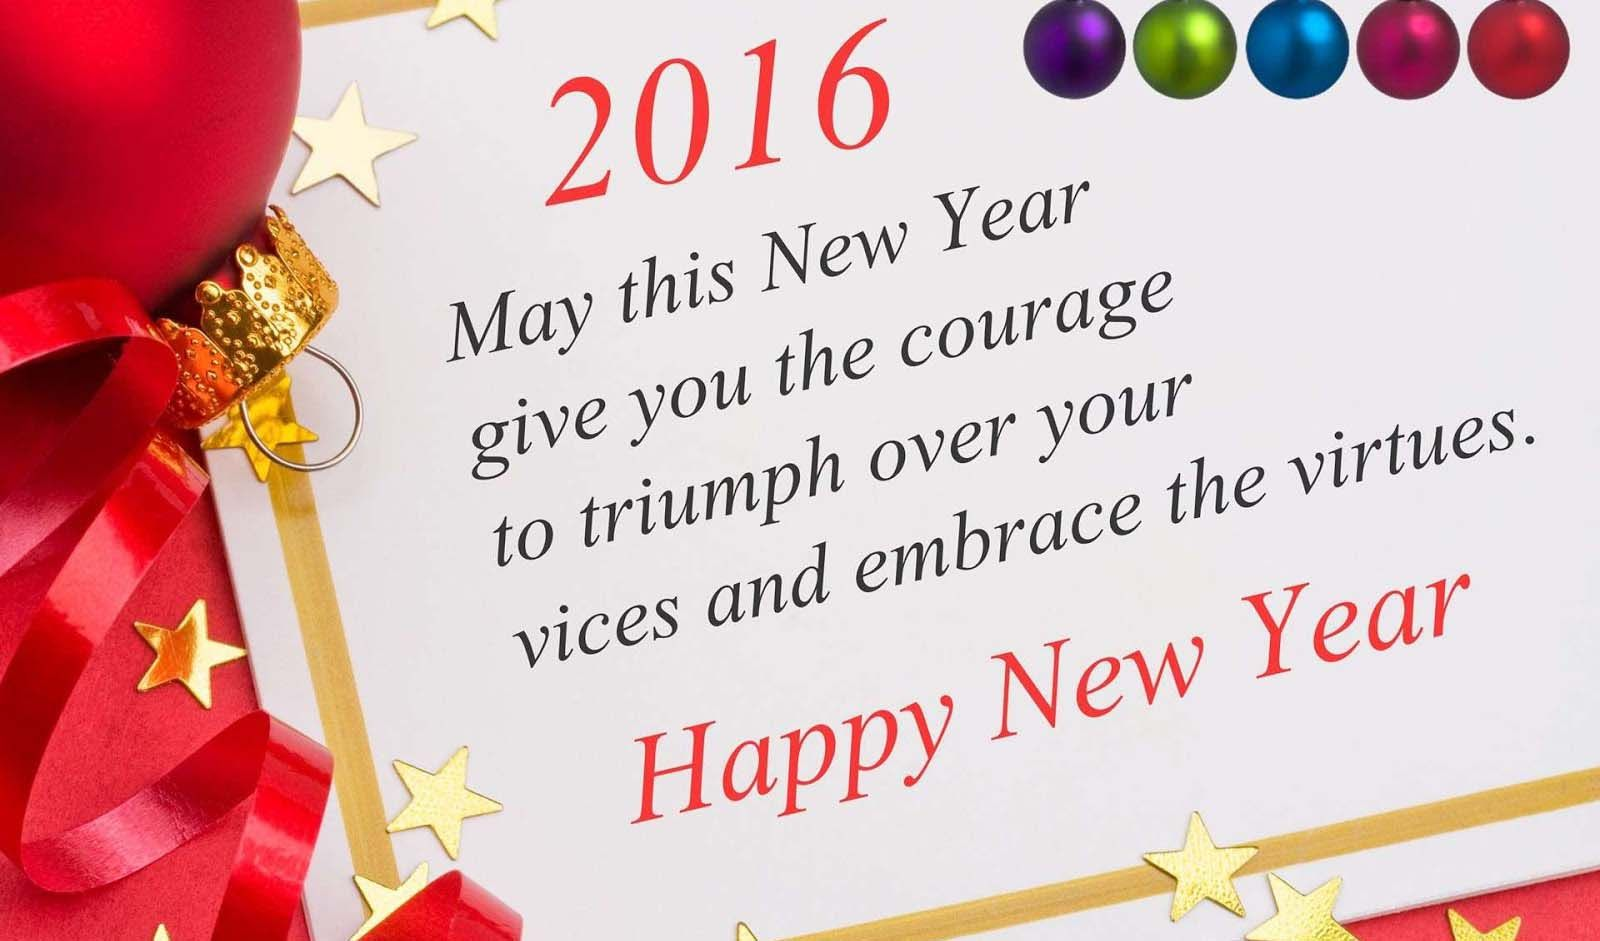 Happy new year wishes images greetings tamilnewyear puthandu happy new year wishes images greetings tamilnewyear puthandu wishes greetings hd mobile kristyandbryce Images